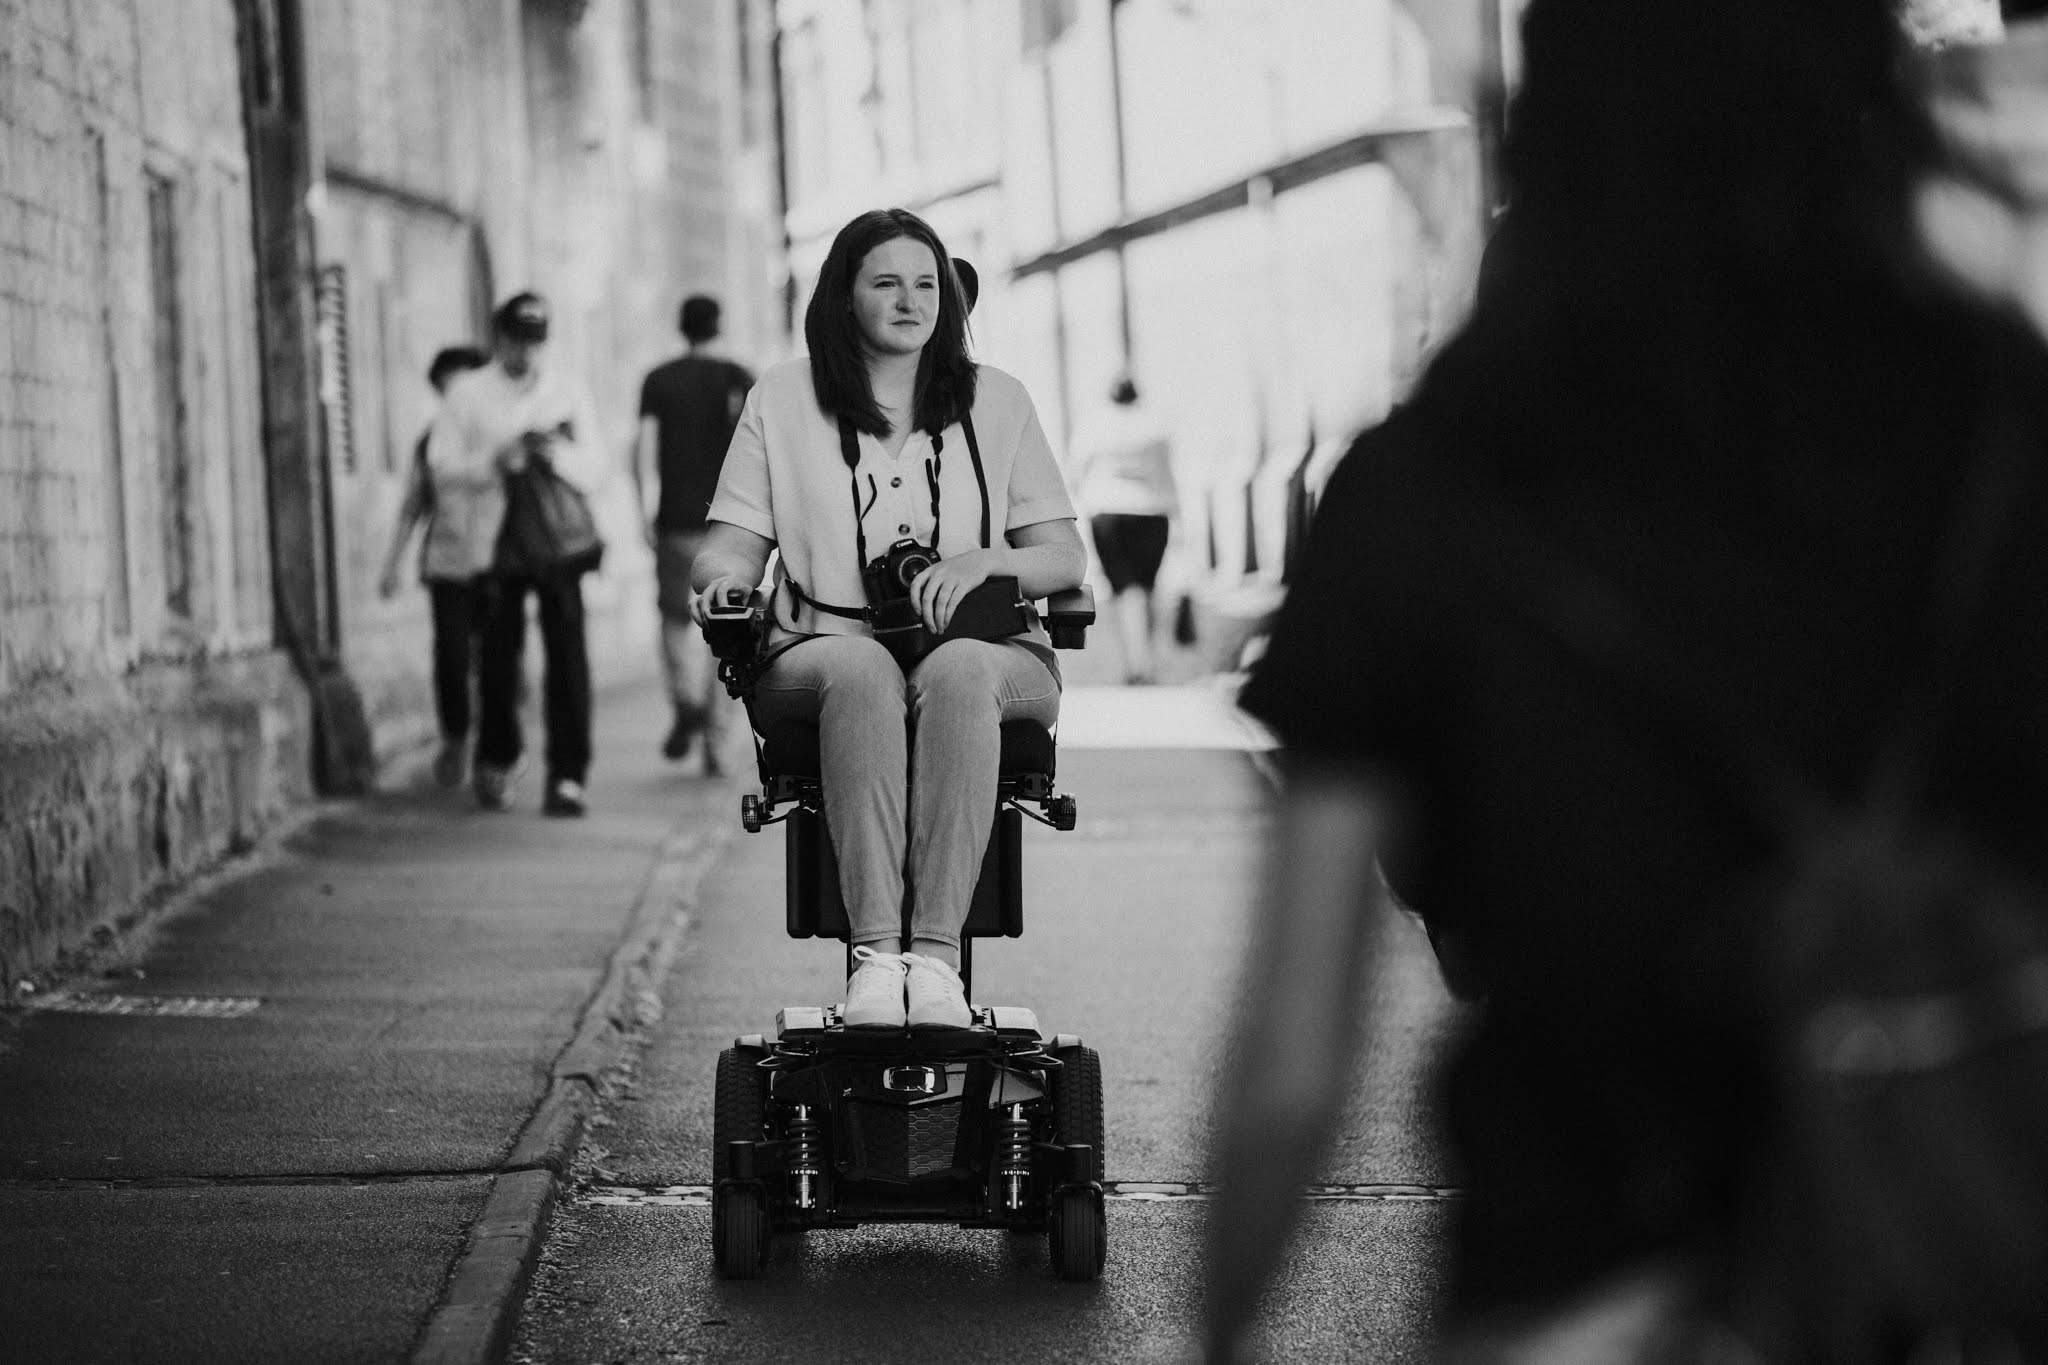 The photo is black and white. Shona, a young woman using a powerchair which is raised up to eye level height, is wheeling down an old cobbled road. Other people are out of focus walking near her.